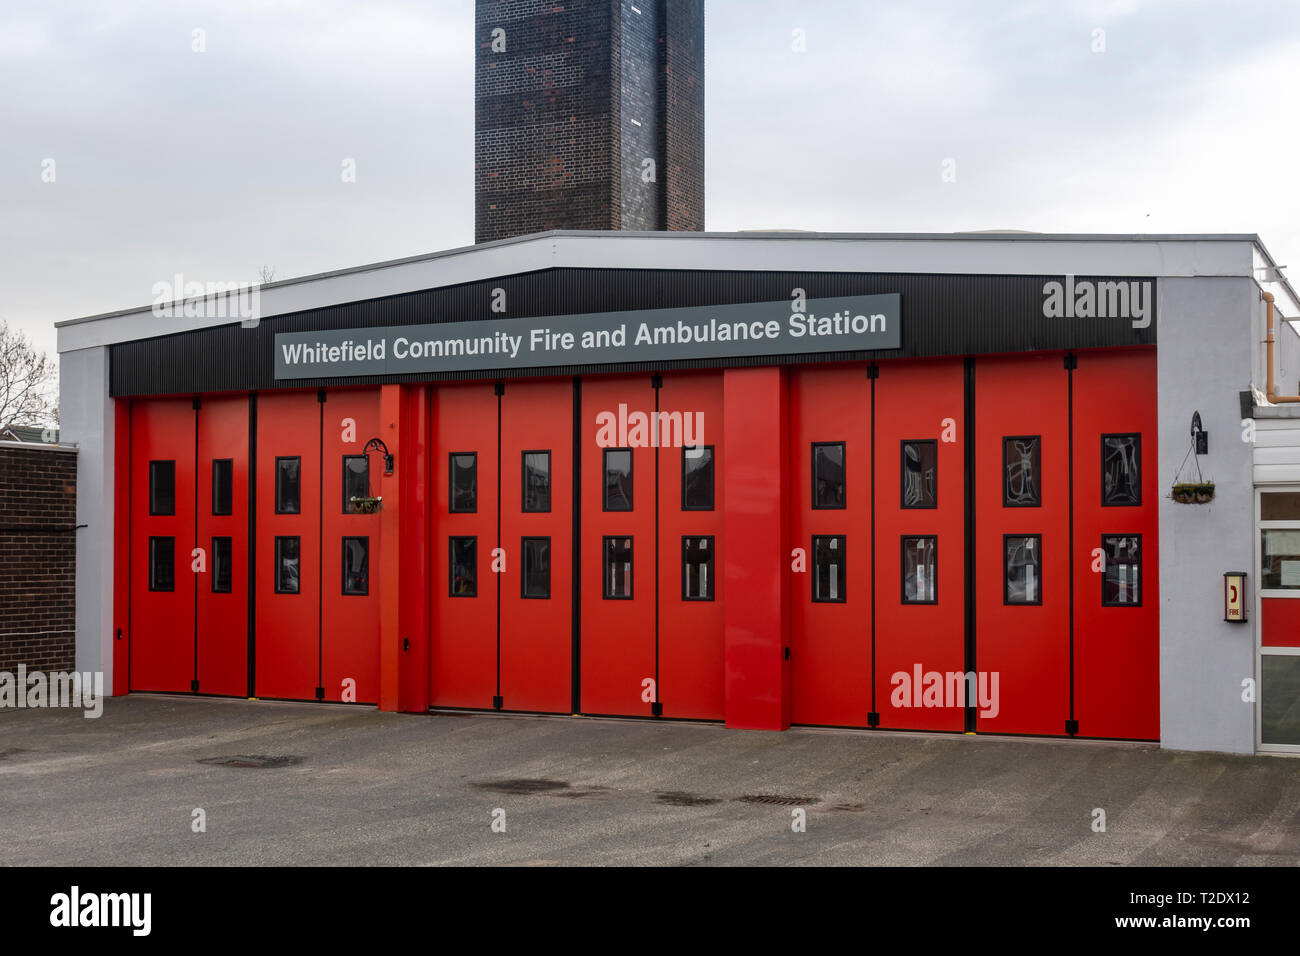 Whitefield Community Fire Station - Stock Image